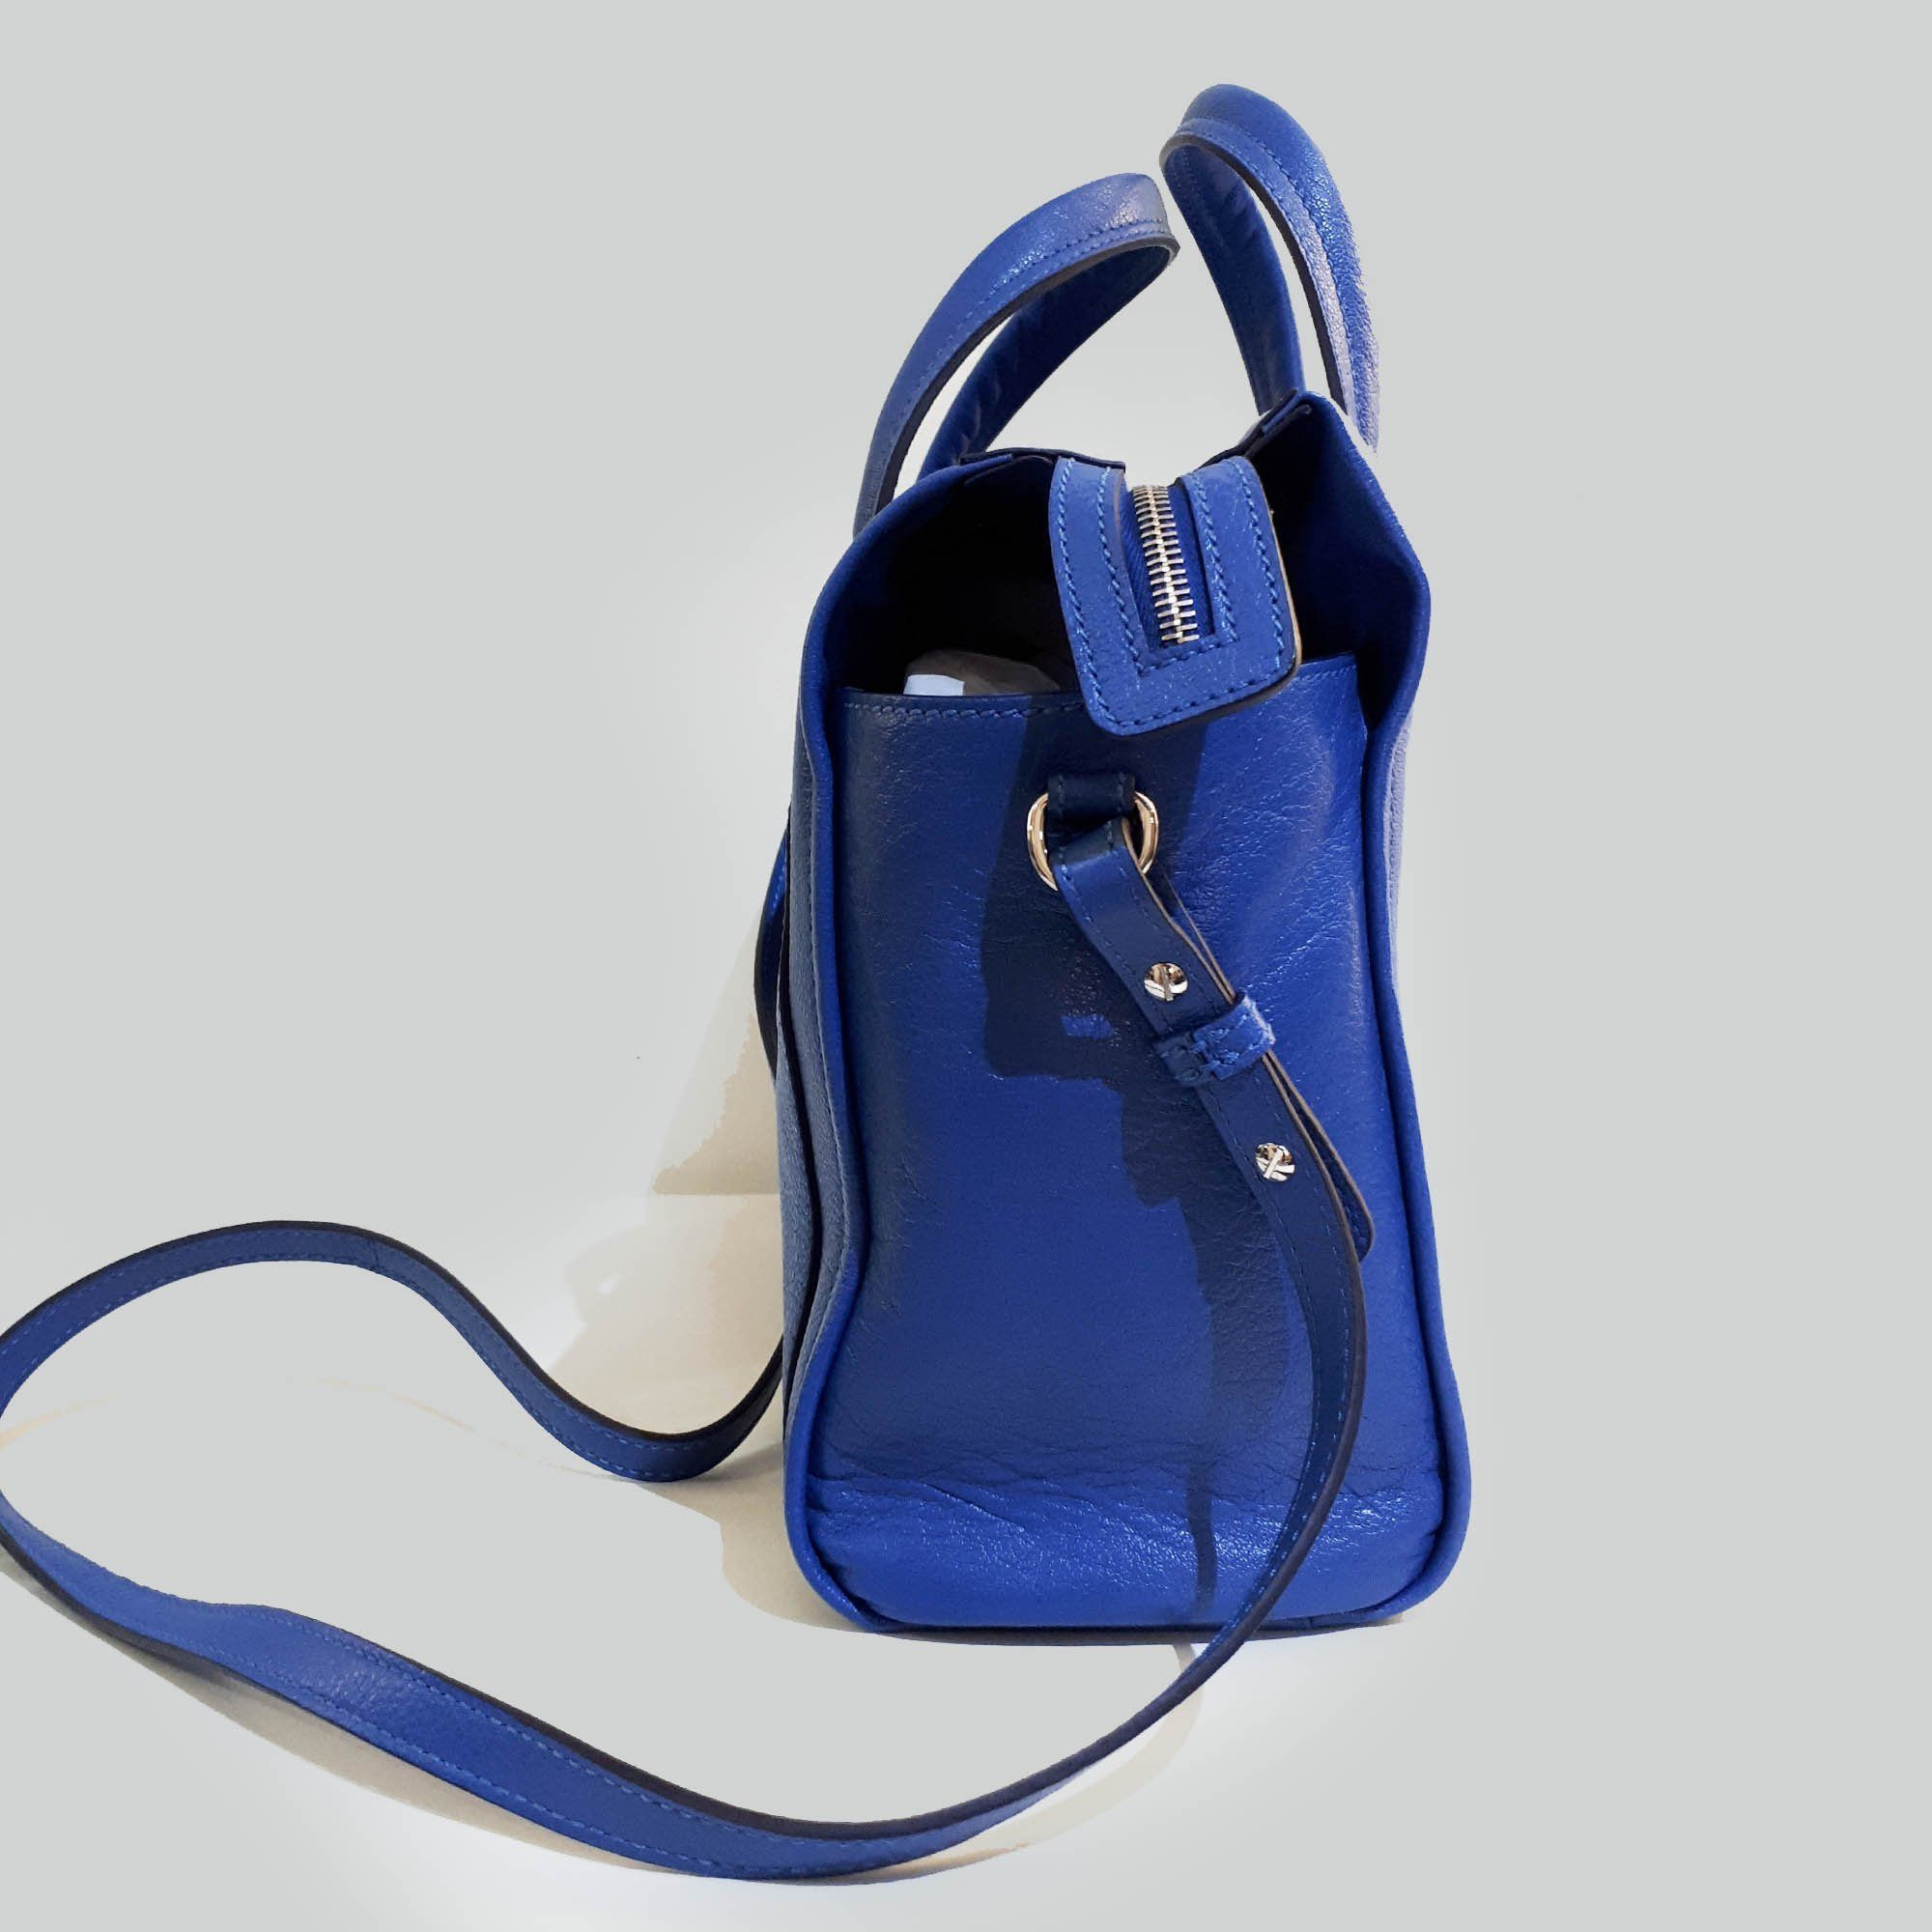 Hogan Blue Top Handle Bag